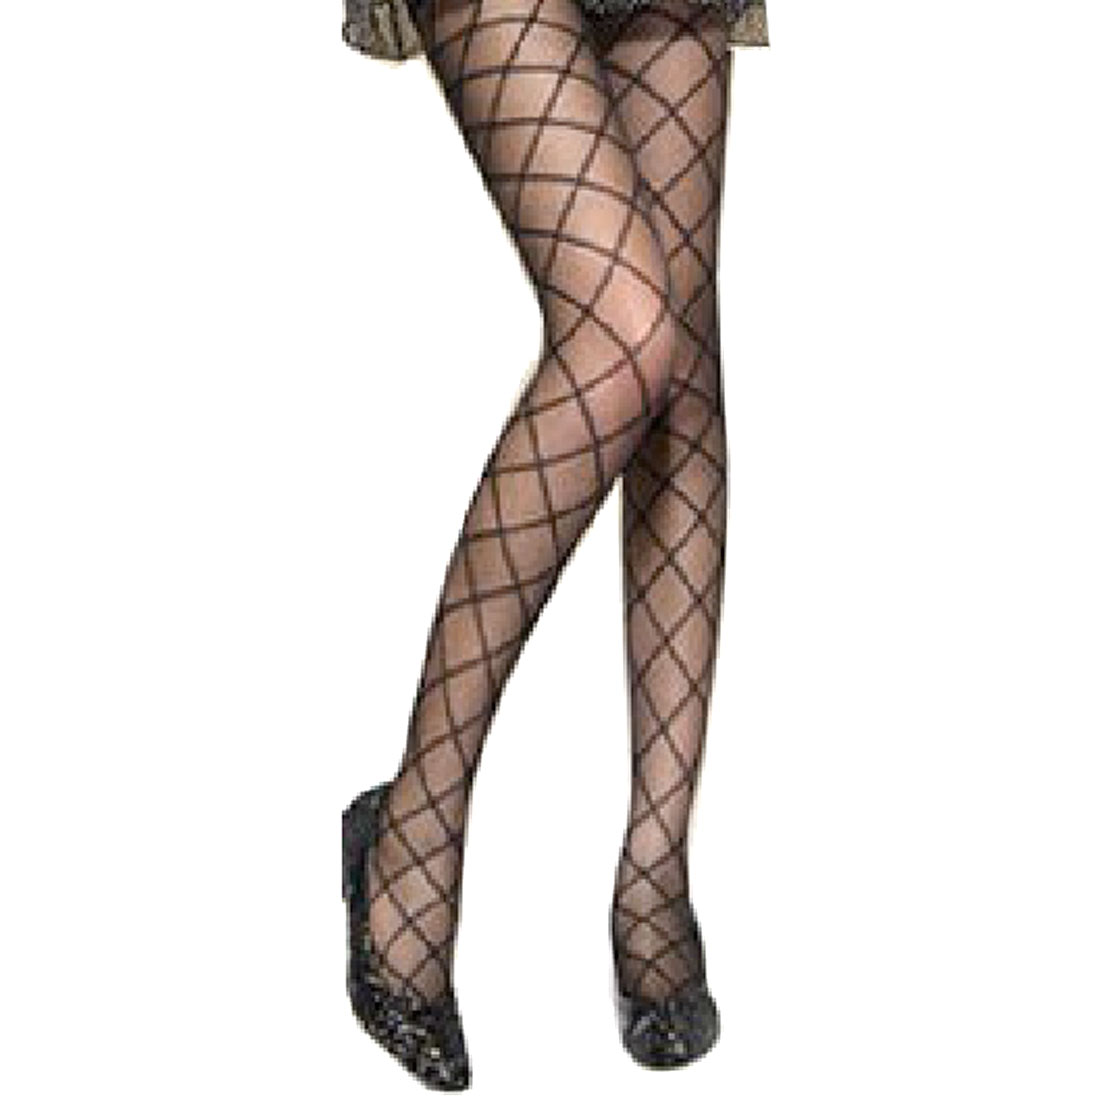 Stretchy Rhombus Pattern Sheer Black Pantyhose Tights for Women XS